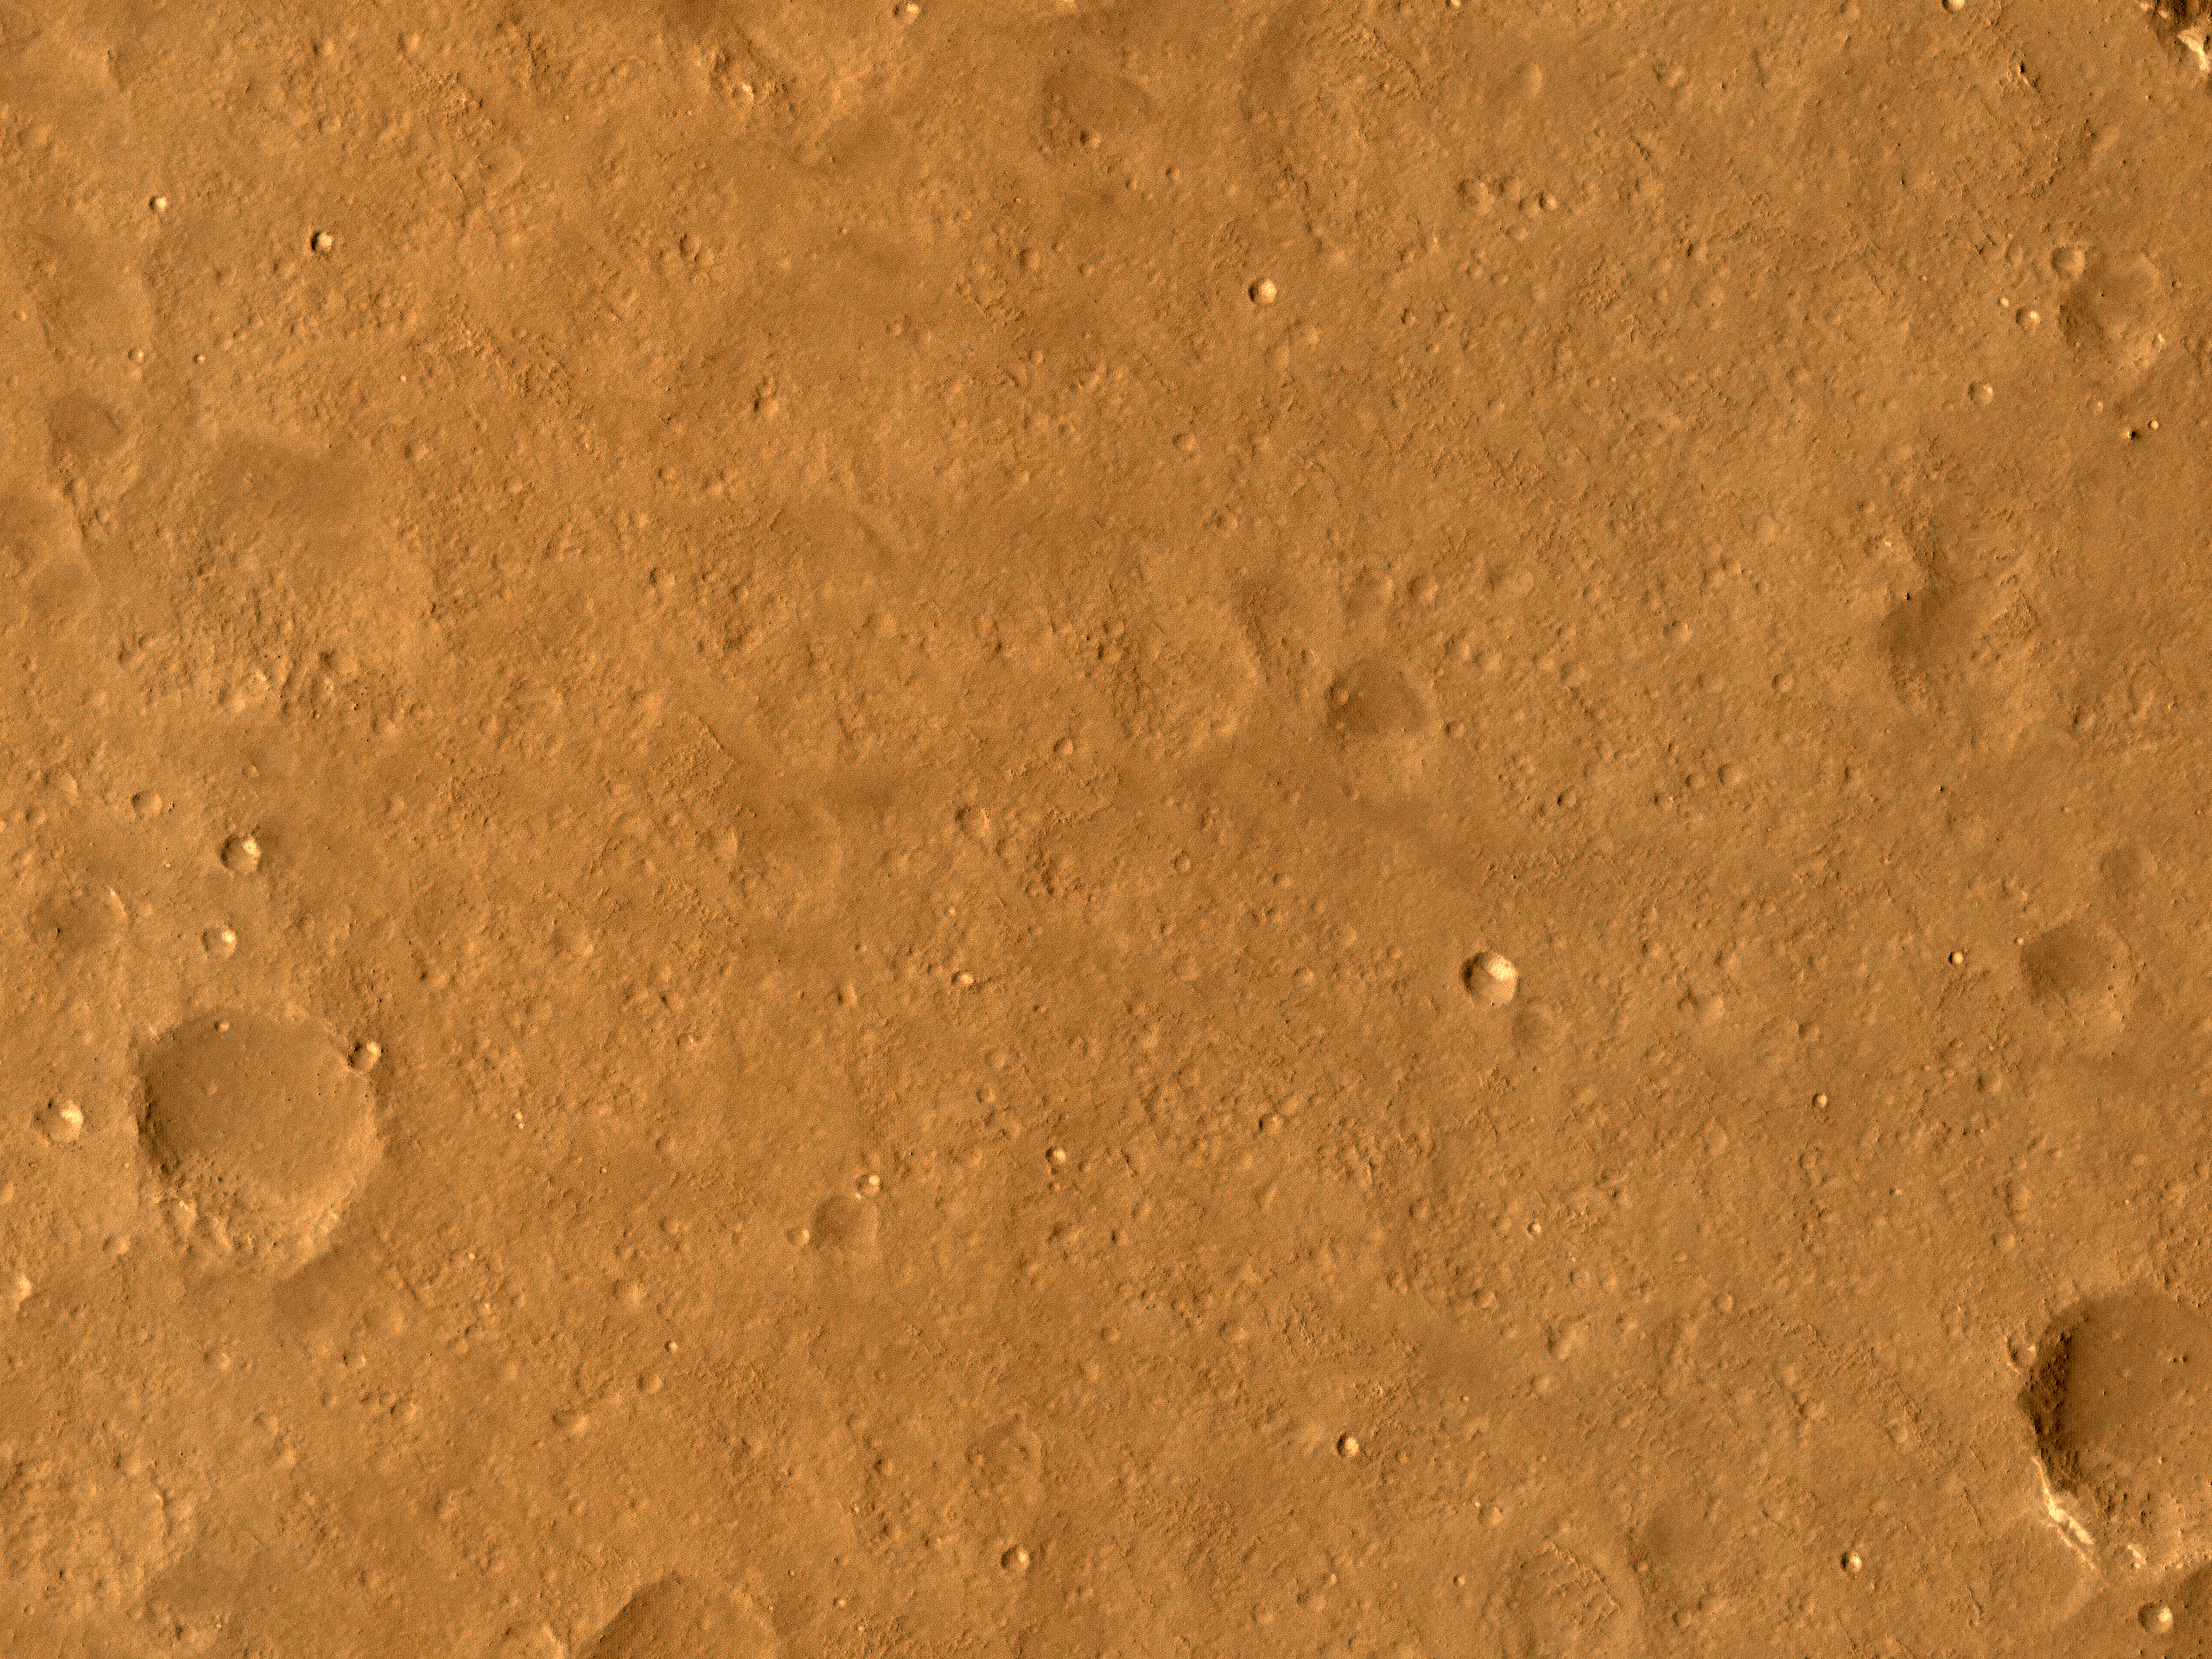 A Candidate Landing Site in Utopia Planitia